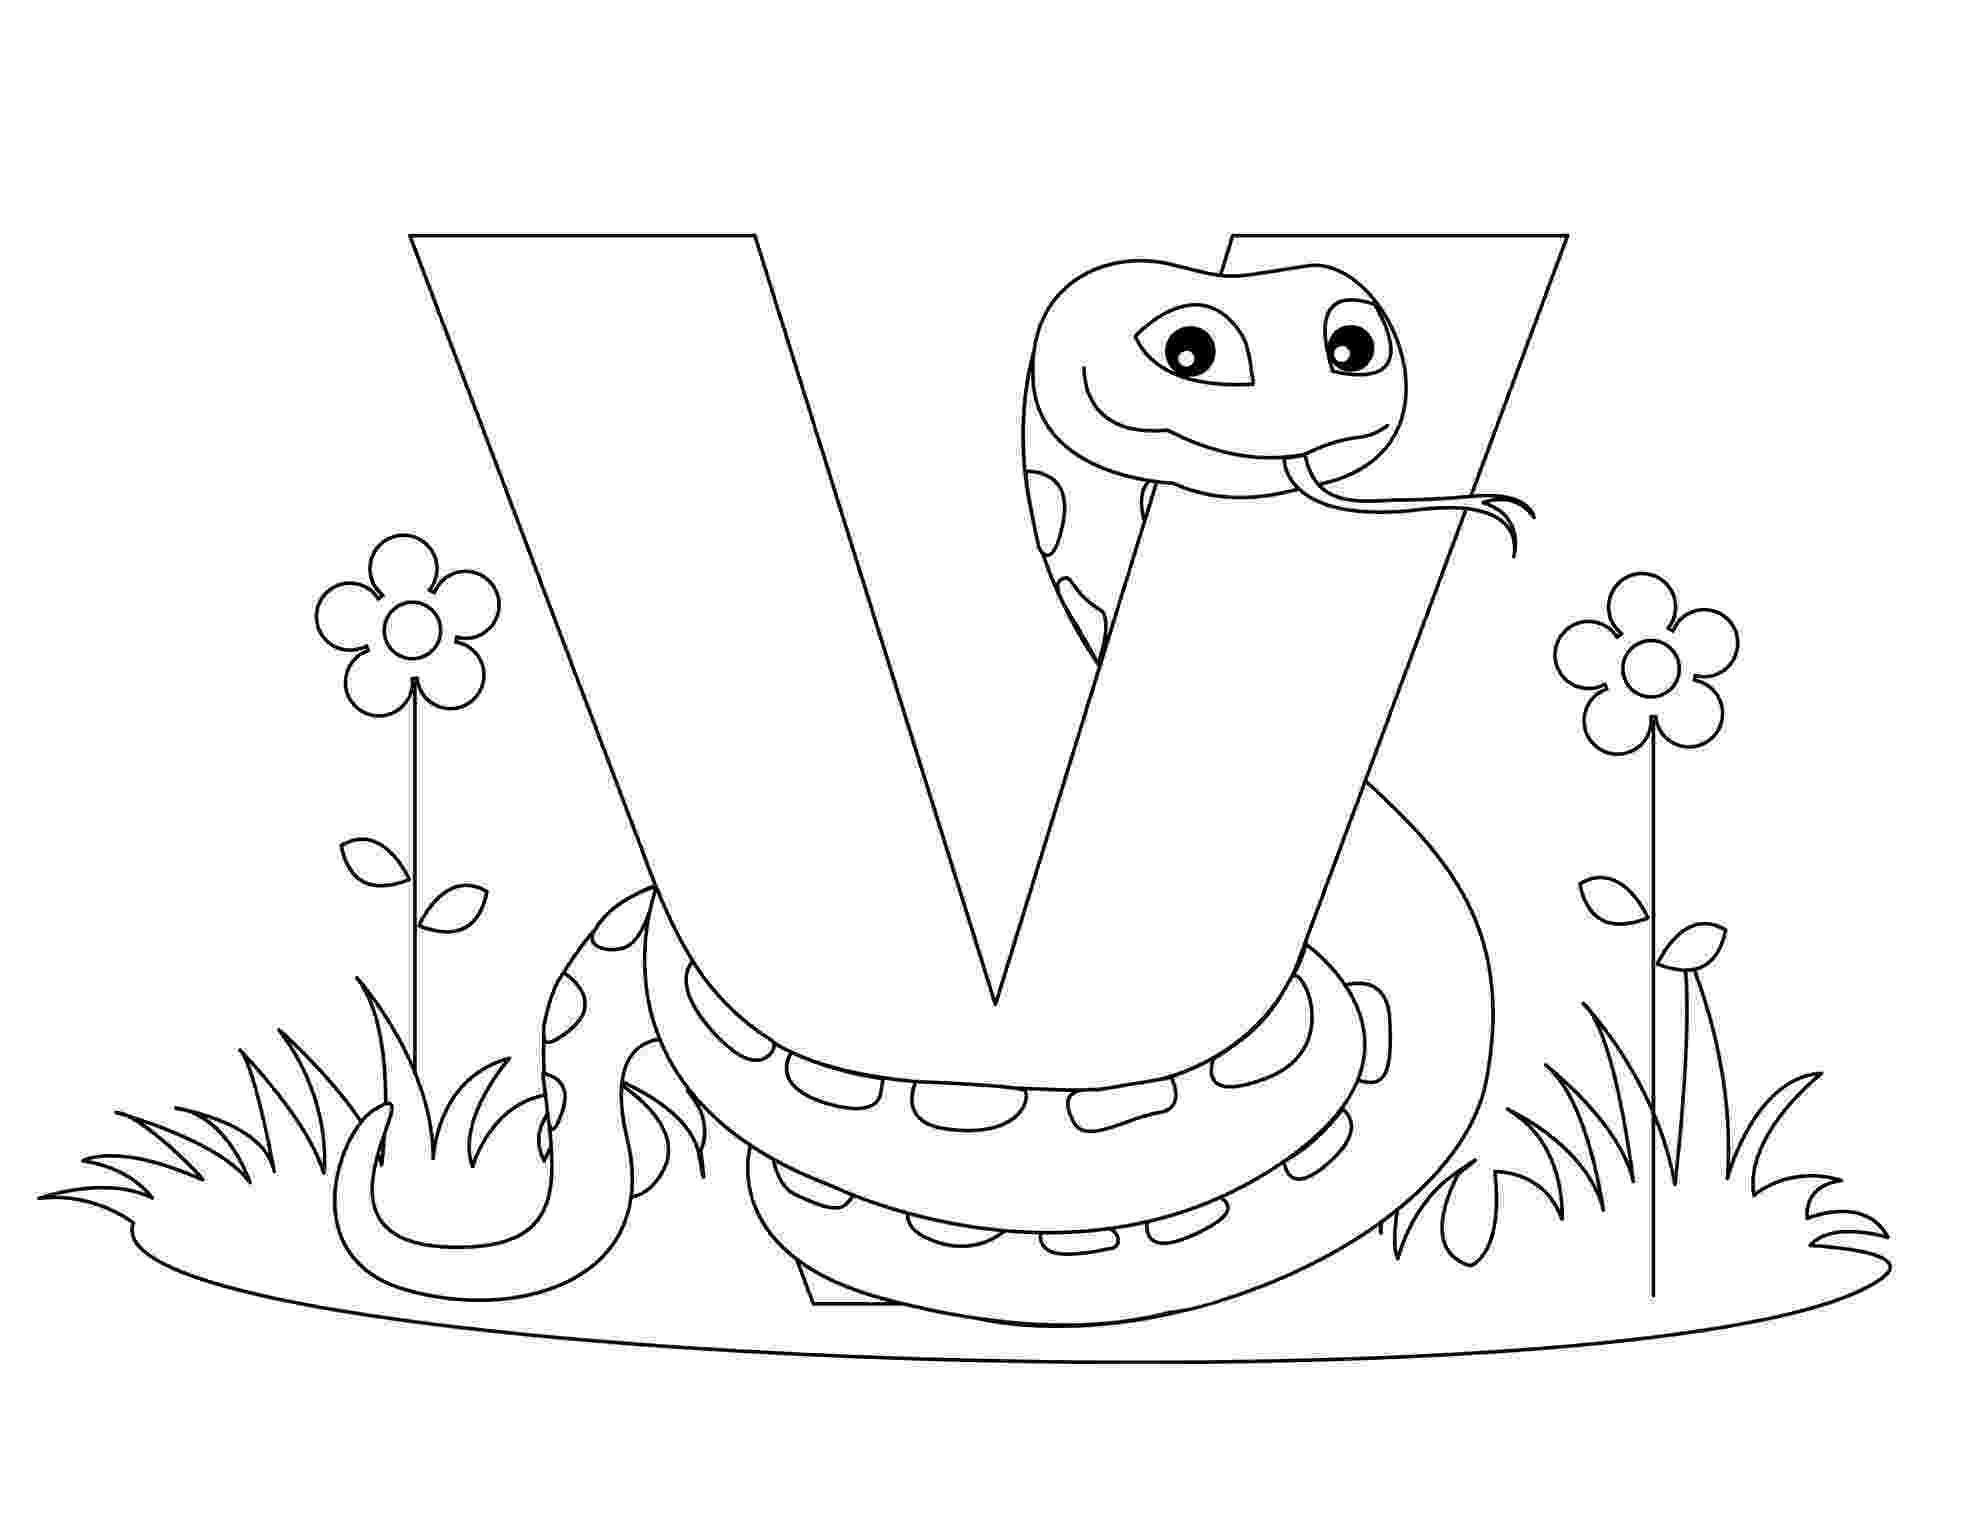 coloring pictures of alphabet letters free printable alphabet coloring pages for kids best letters coloring pictures of alphabet